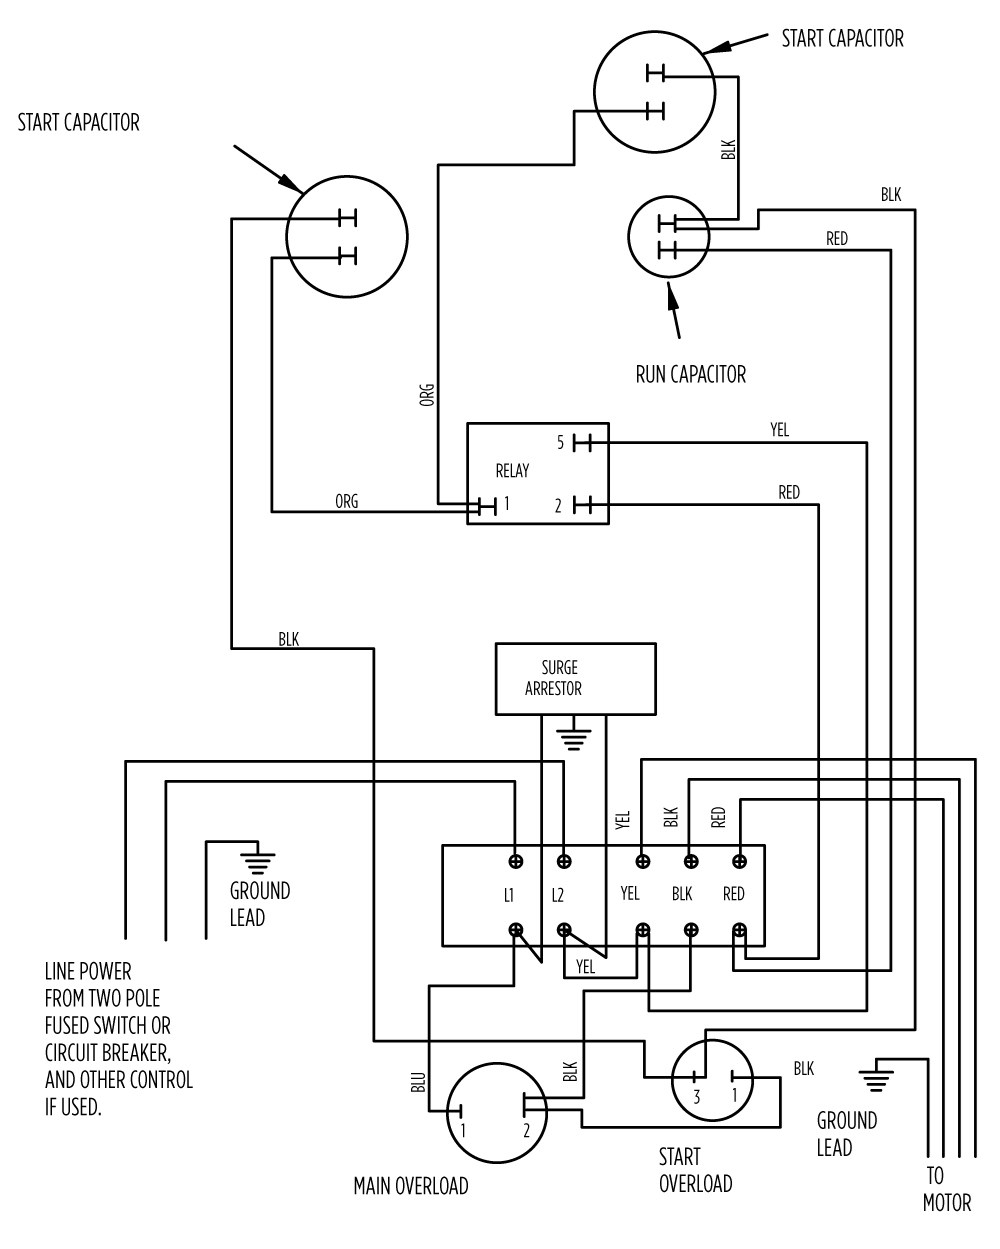 75 hp standard 282 201 9210_aim gallery?format=jpg&quality=80 aim manual page 56 single phase motors and controls motor wiring diagram for submersible pump control box at edmiracle.co